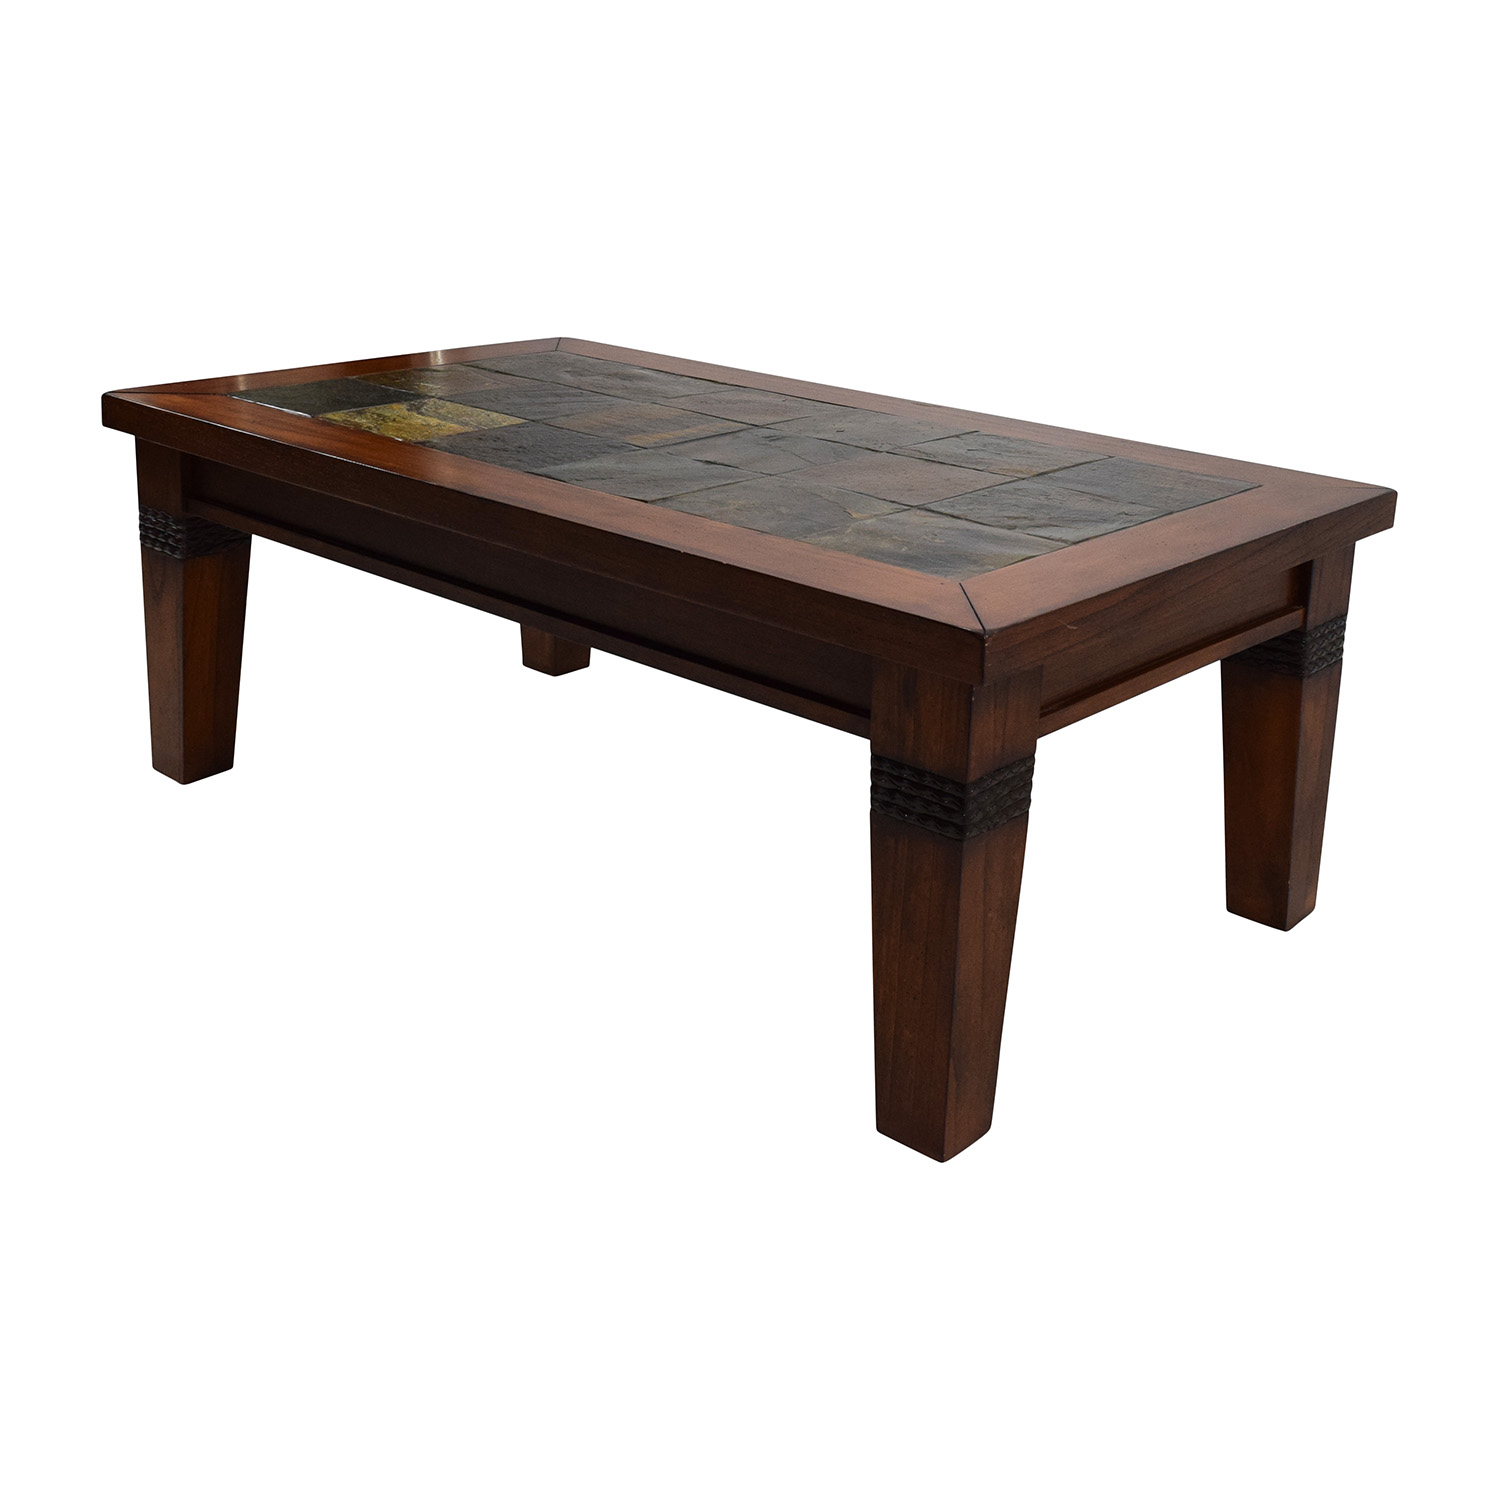 77% off - wooden & tiled coffee table / tables